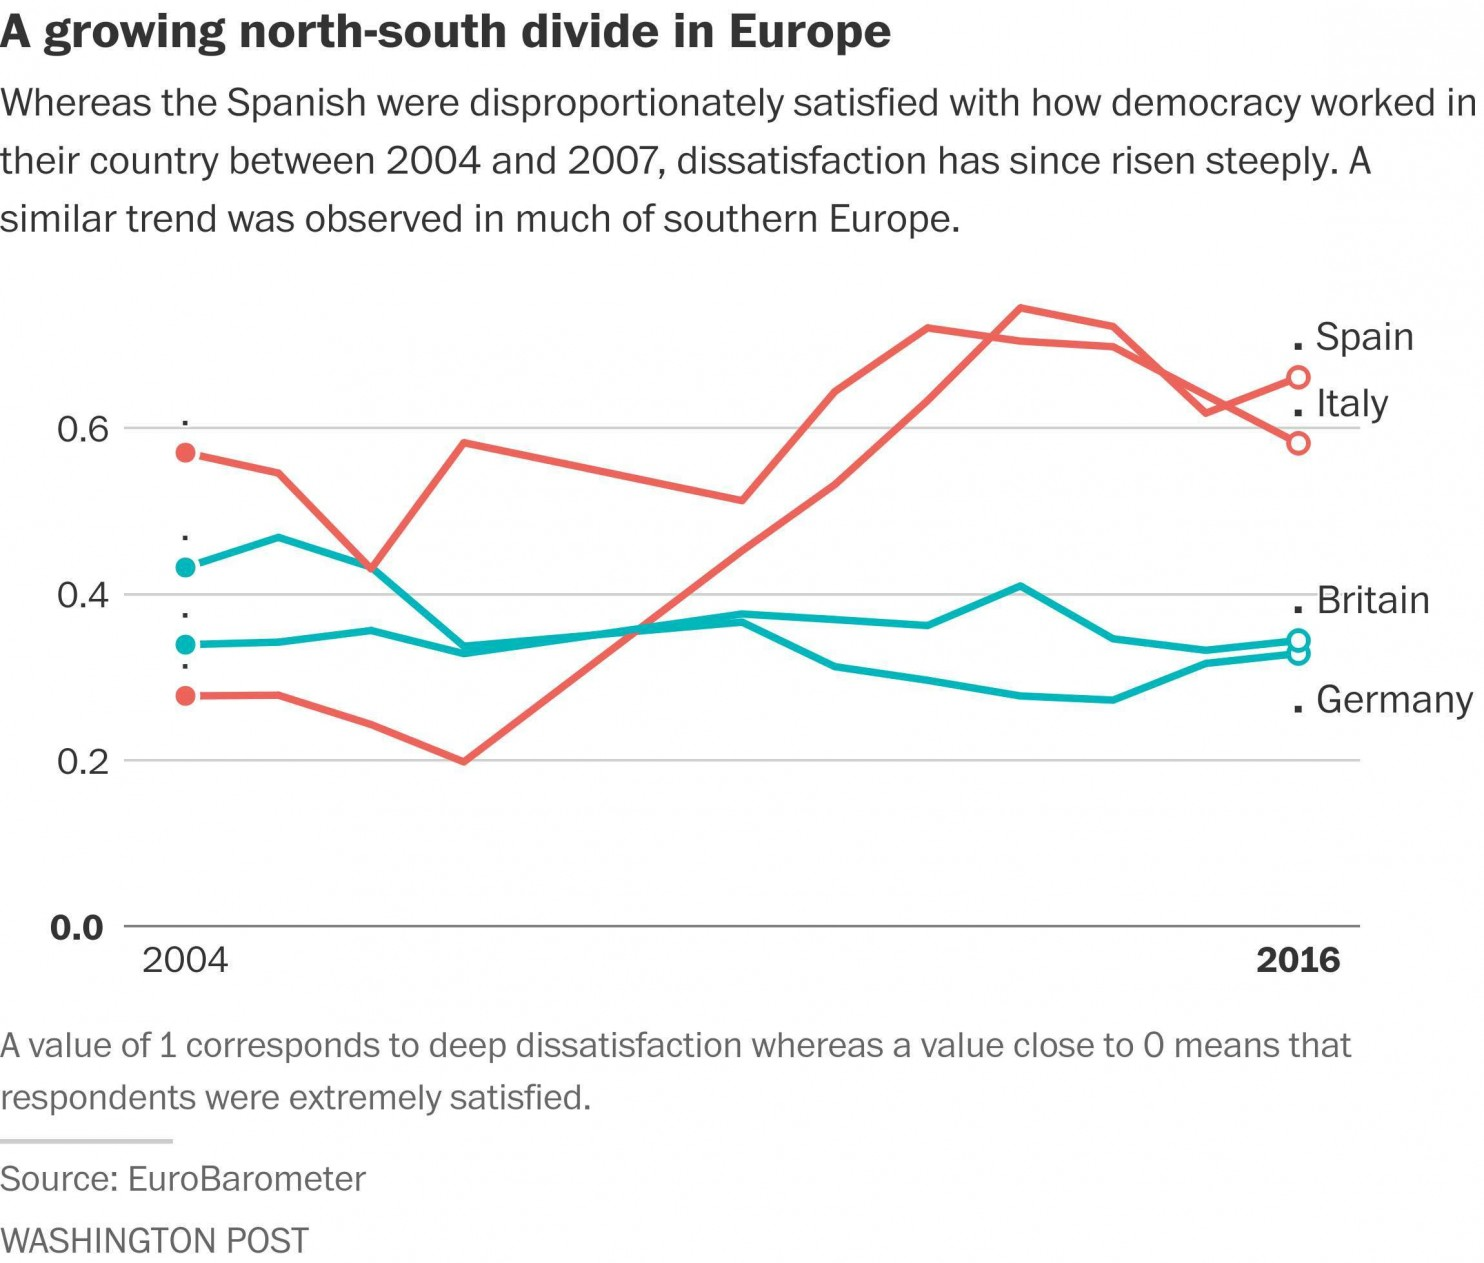 eu-democracy-dissatisfaction-graph.jpg